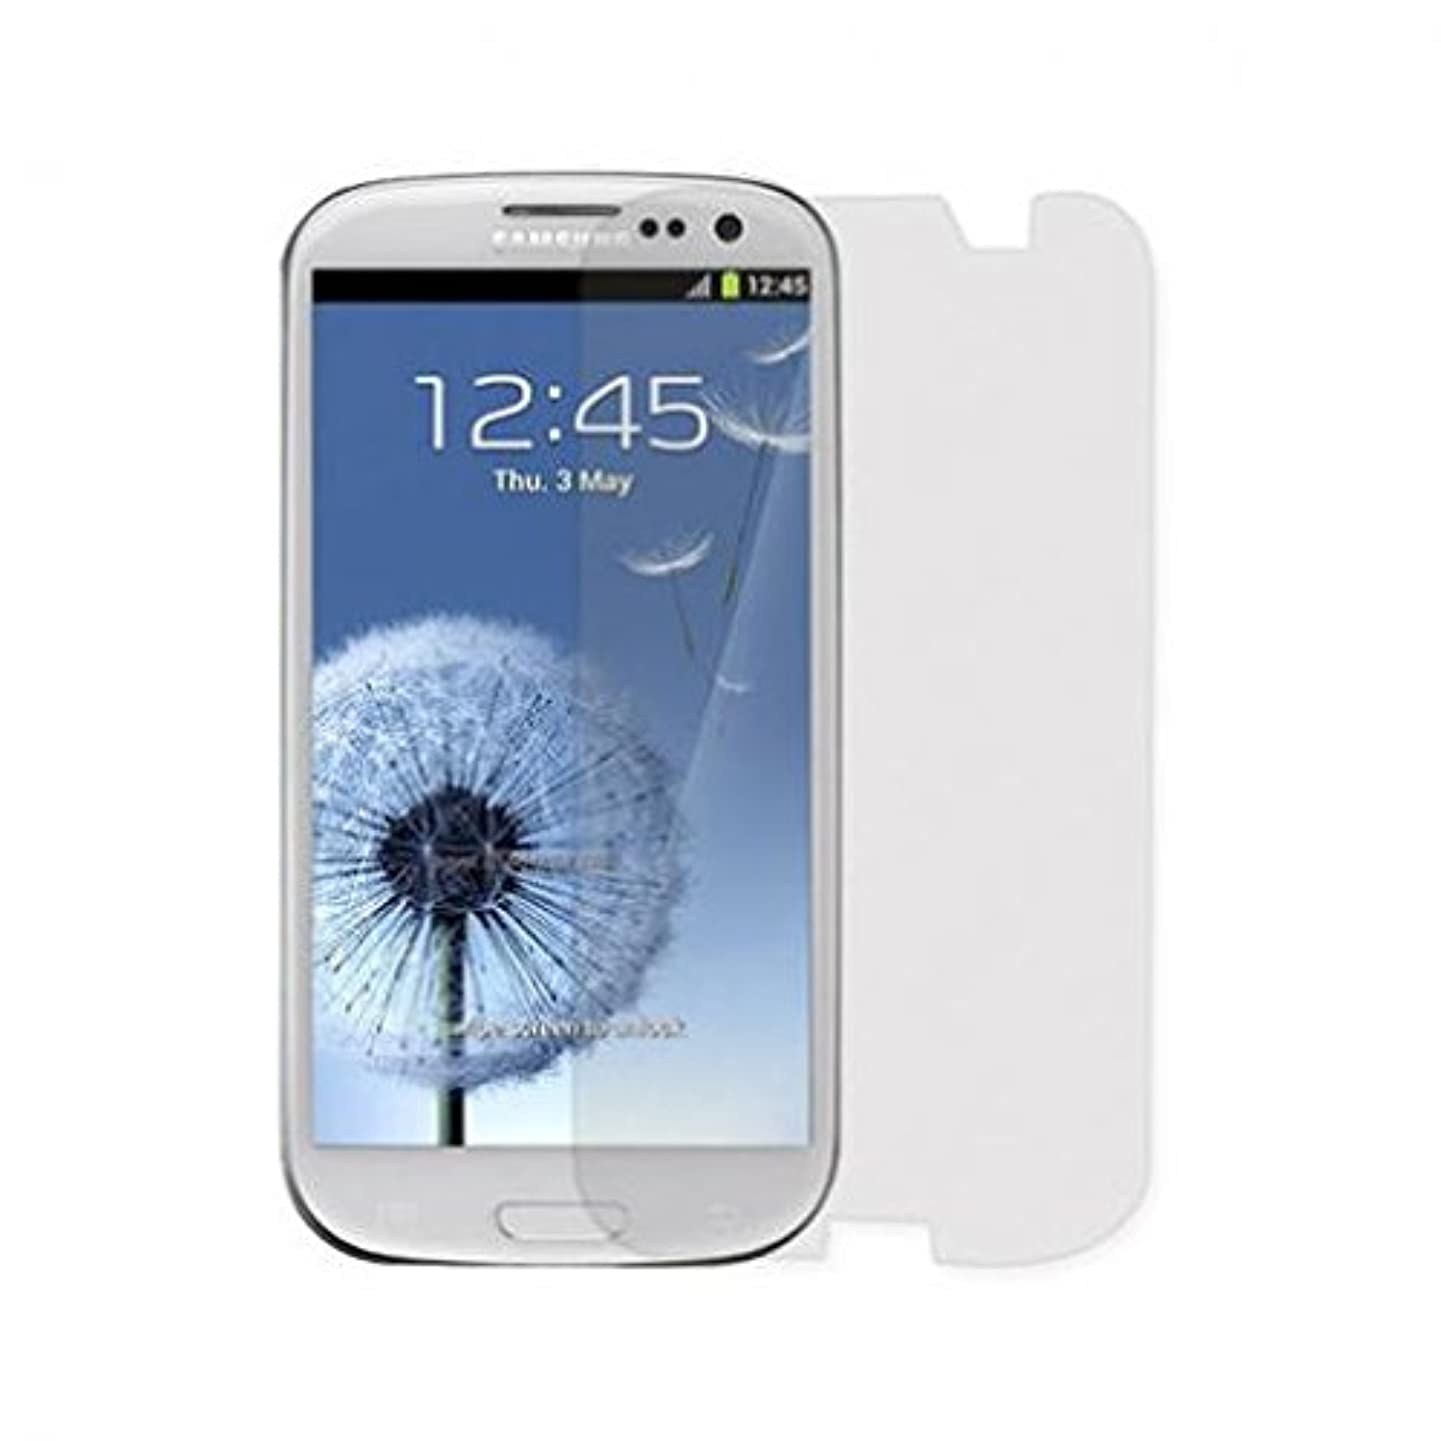 T-Mobile Samsung Galaxy S3 (SGH-T999) Screen Protector, Screen Protector HD Clear LCD Film Display Cover Shield for Samsung Galaxy S3 (SGH-T999)